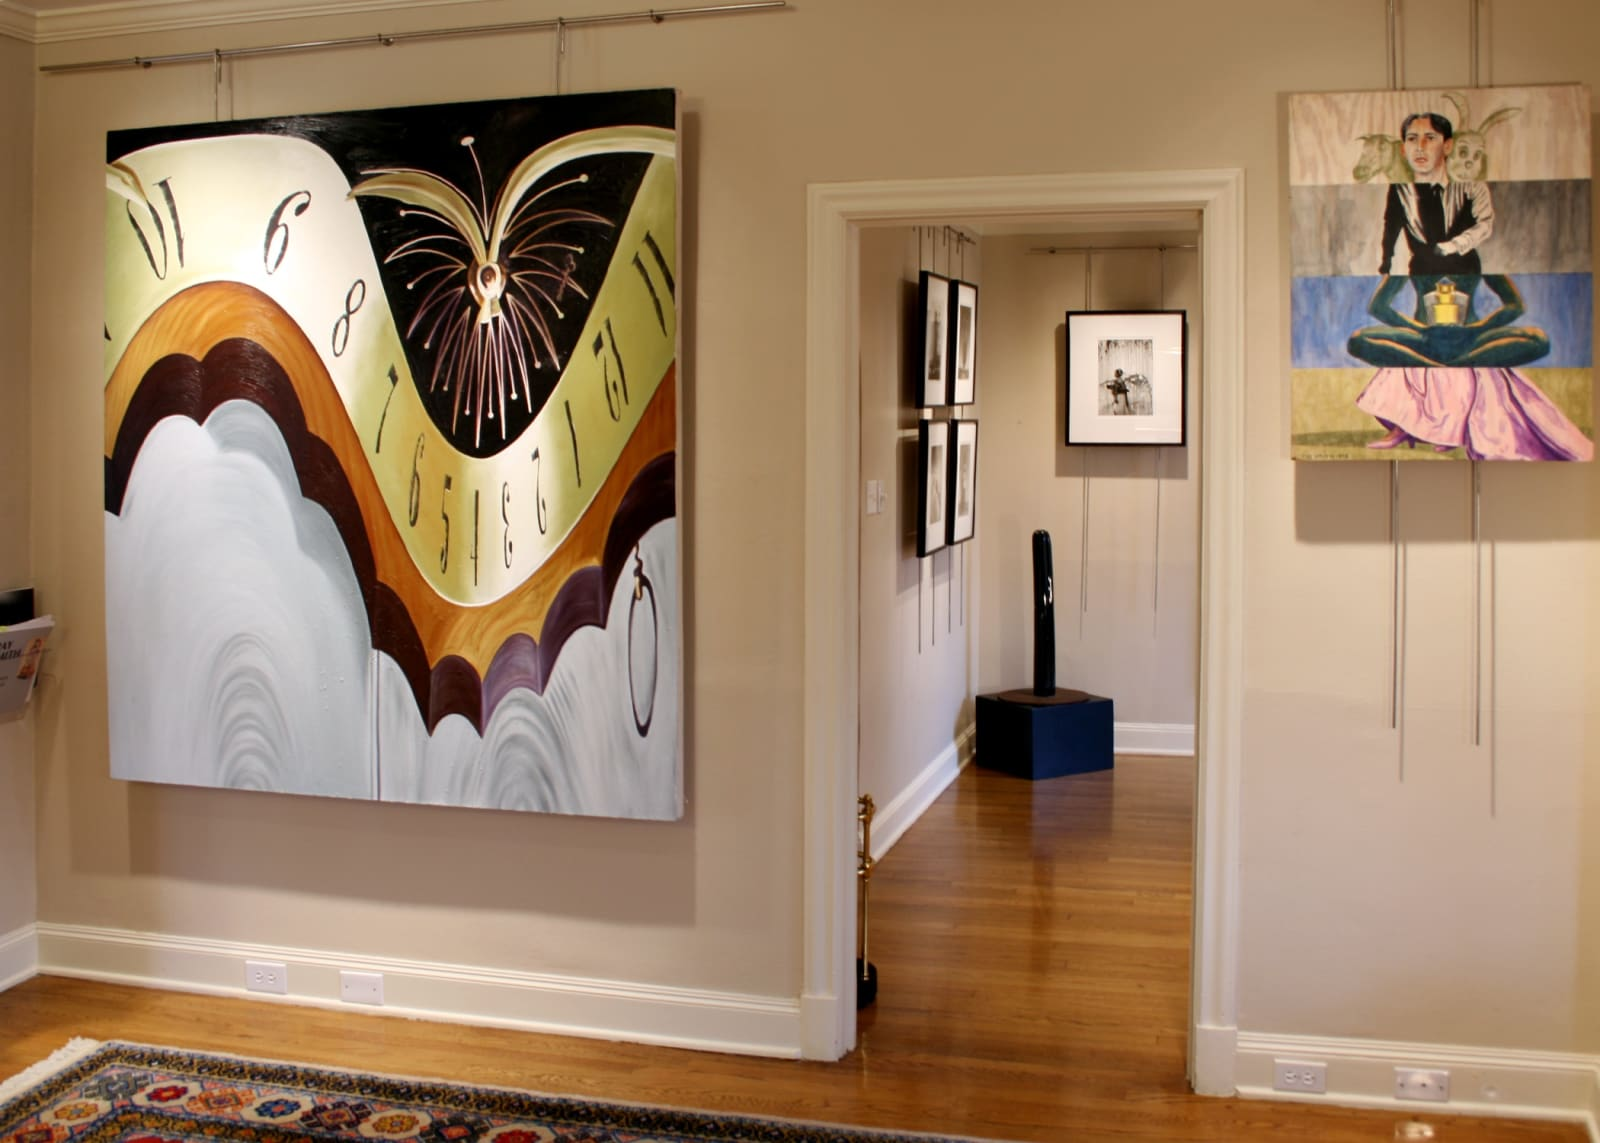 Art in Dialogue: Color, Form & Line